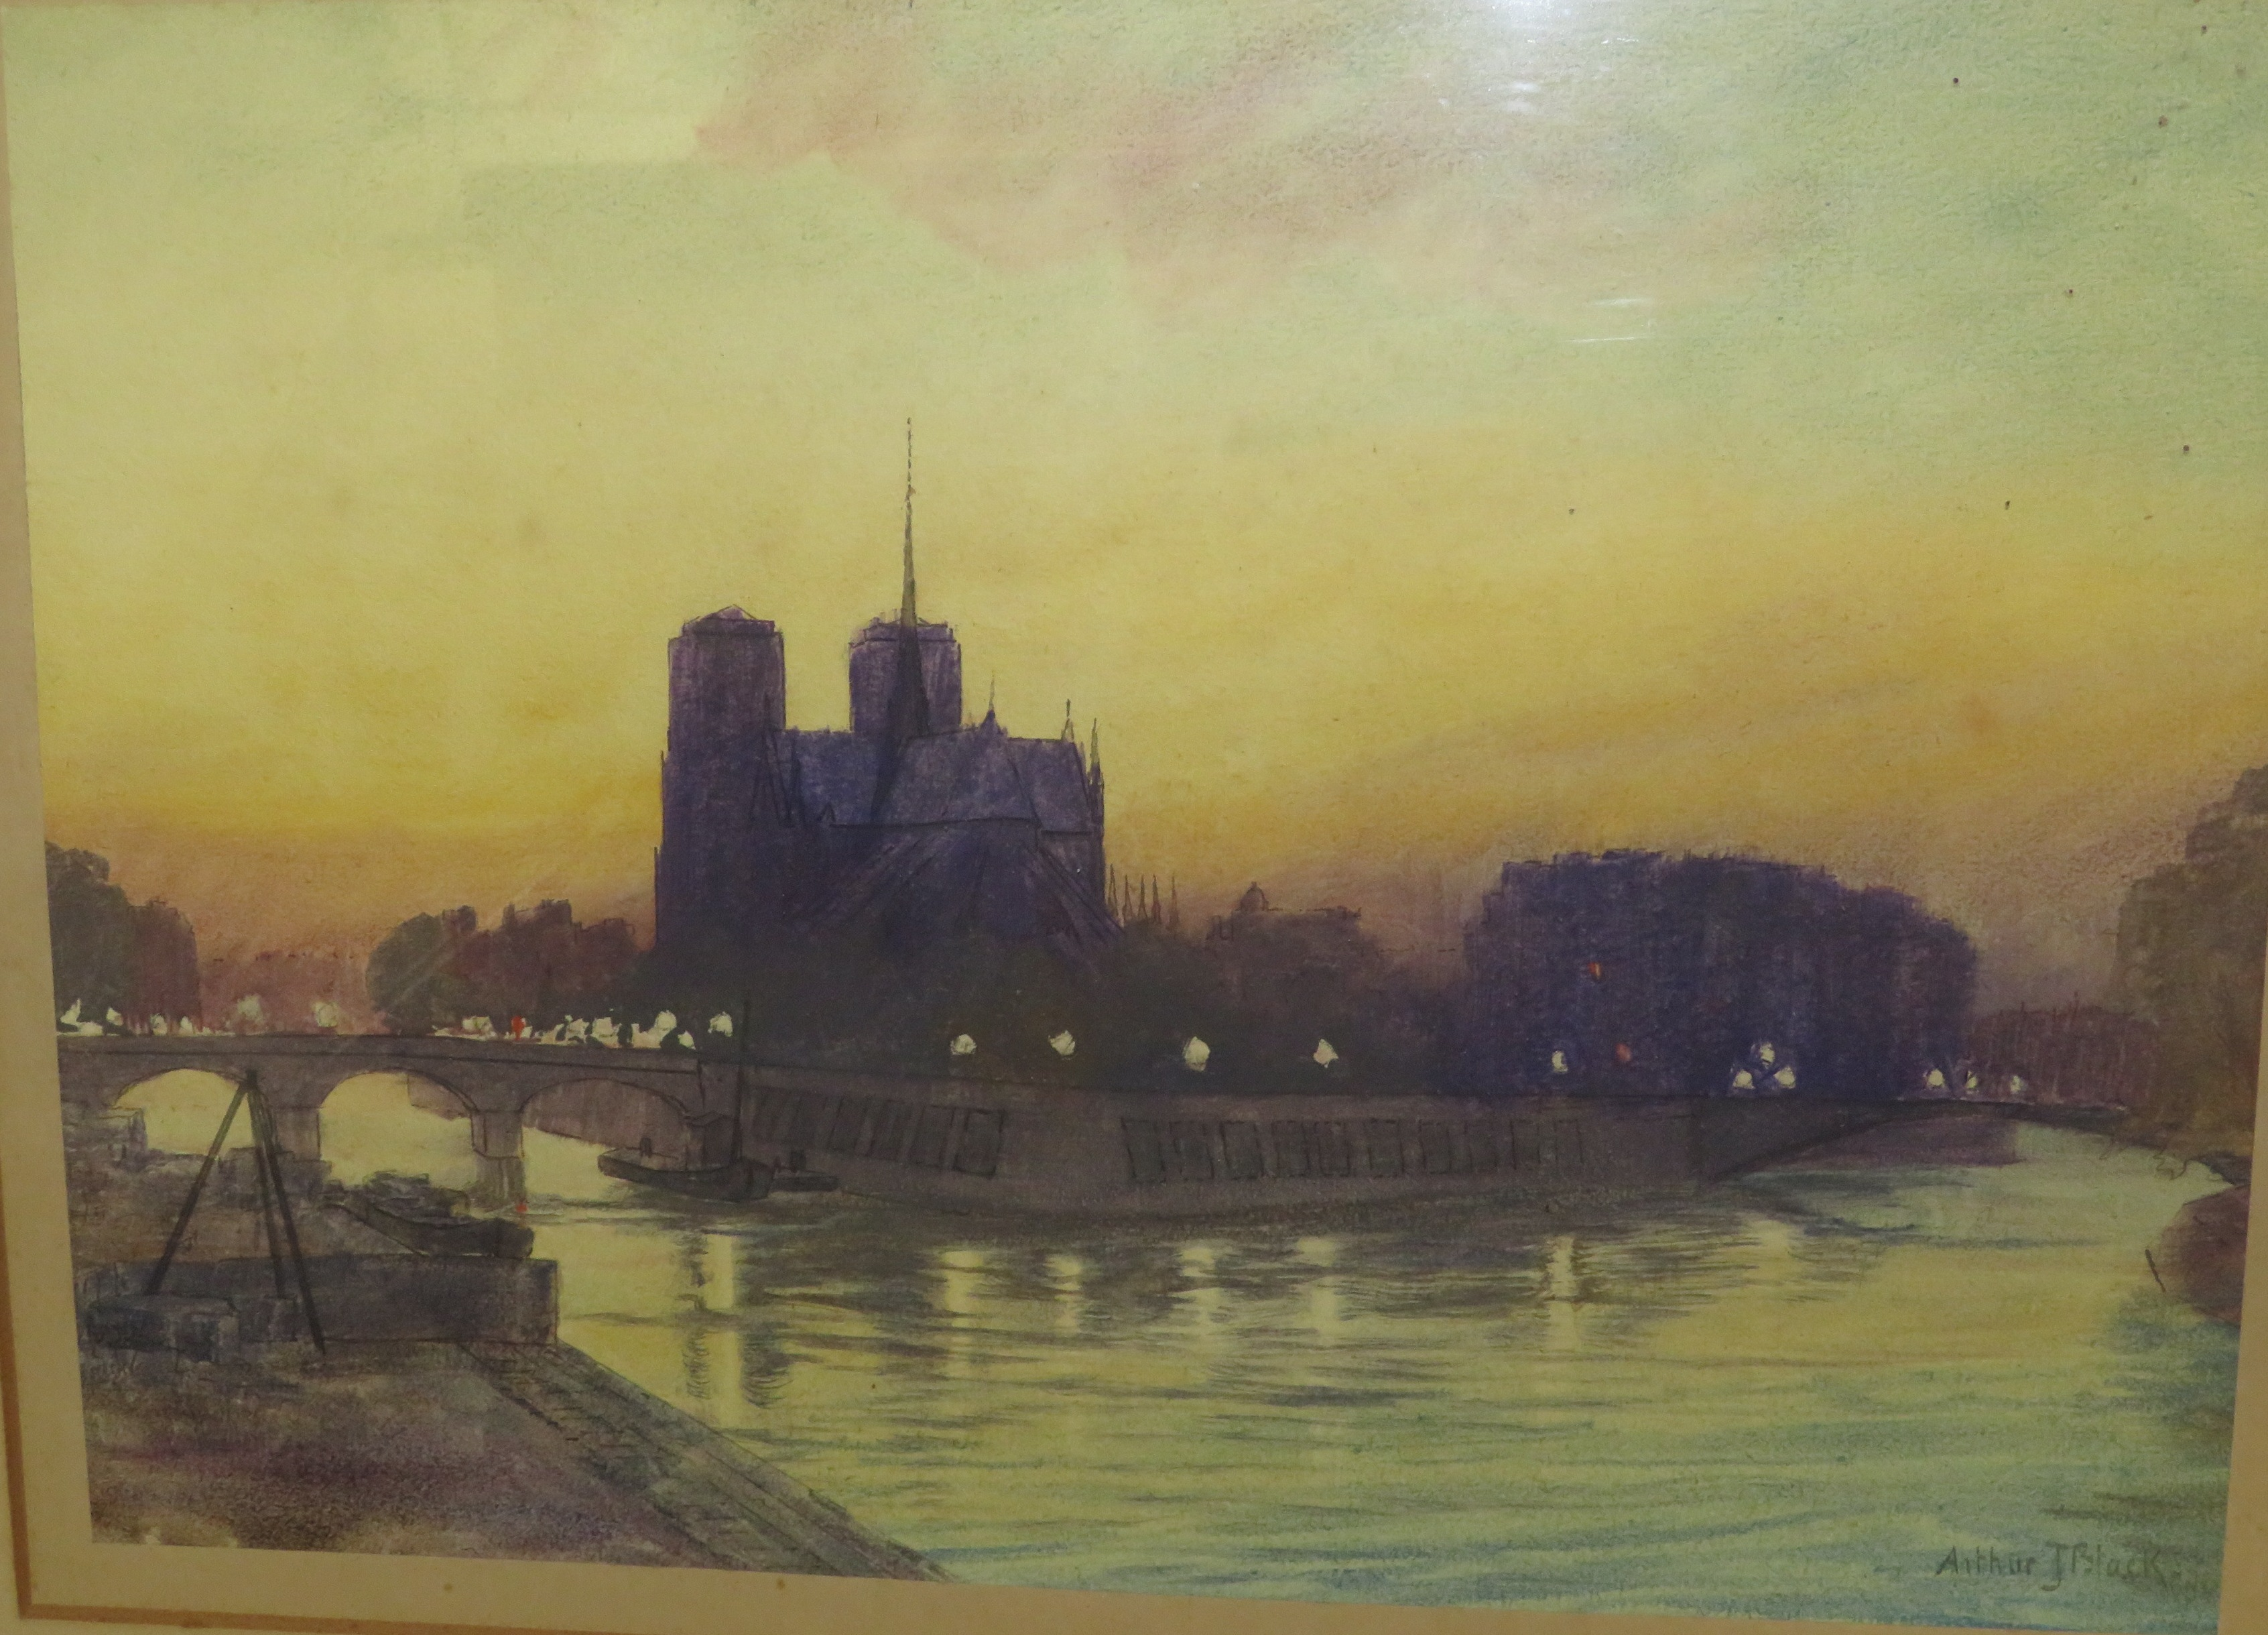 Lot 20 - Notre Dame cathedral in twilight, watercolour, signed Arthur J Black lower right, (26cm x 37cm) in a